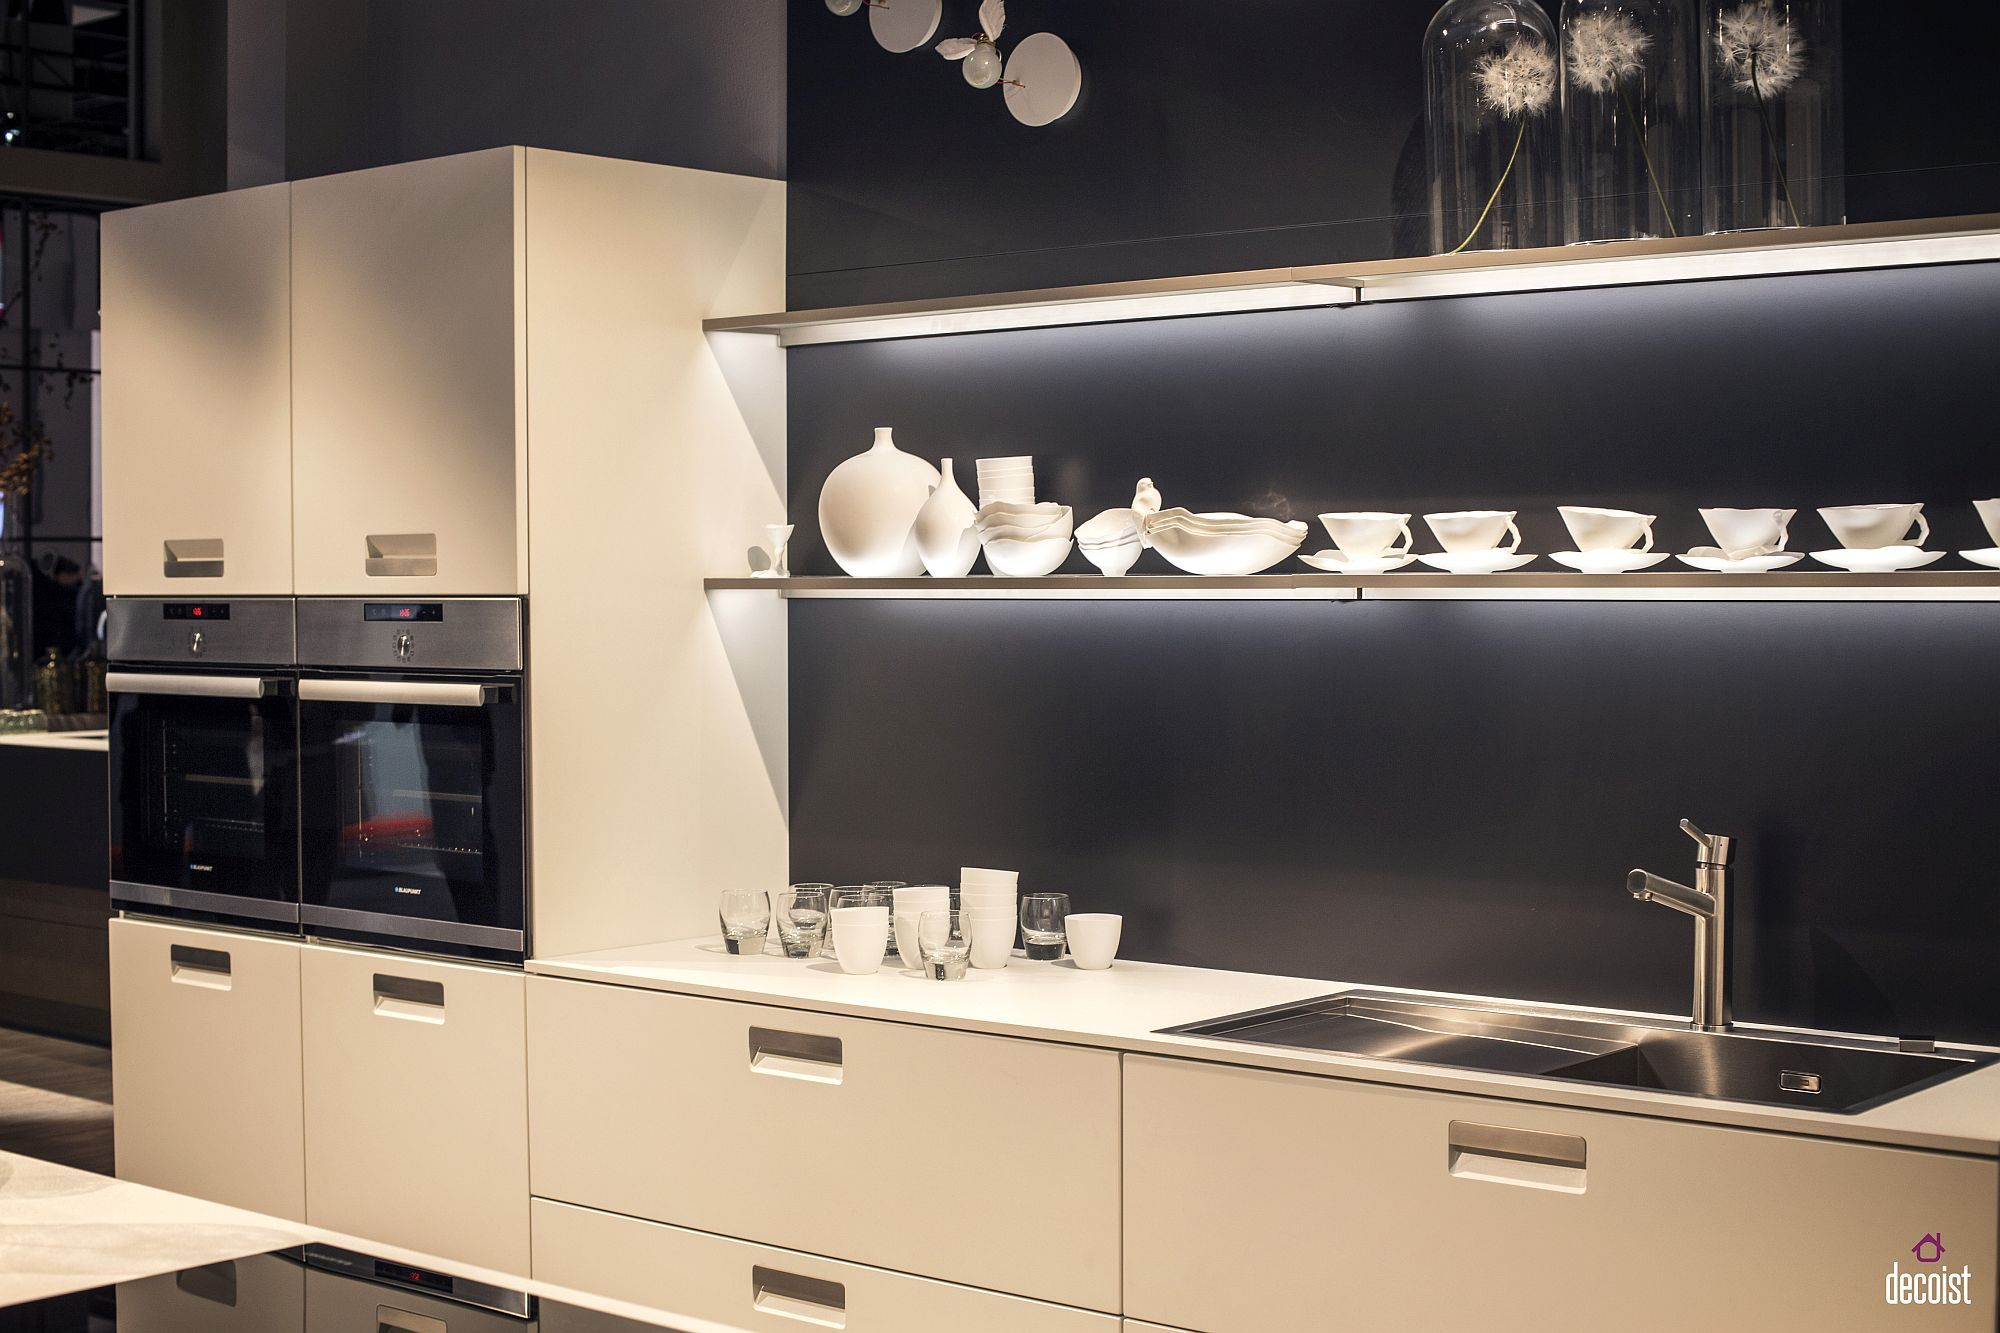 Decorating With Led Strip Lights Kitchens With Energy Efficient Radiance Modern Kitchen Shelves Modern Kitchen Open Kitchen Shelf Design